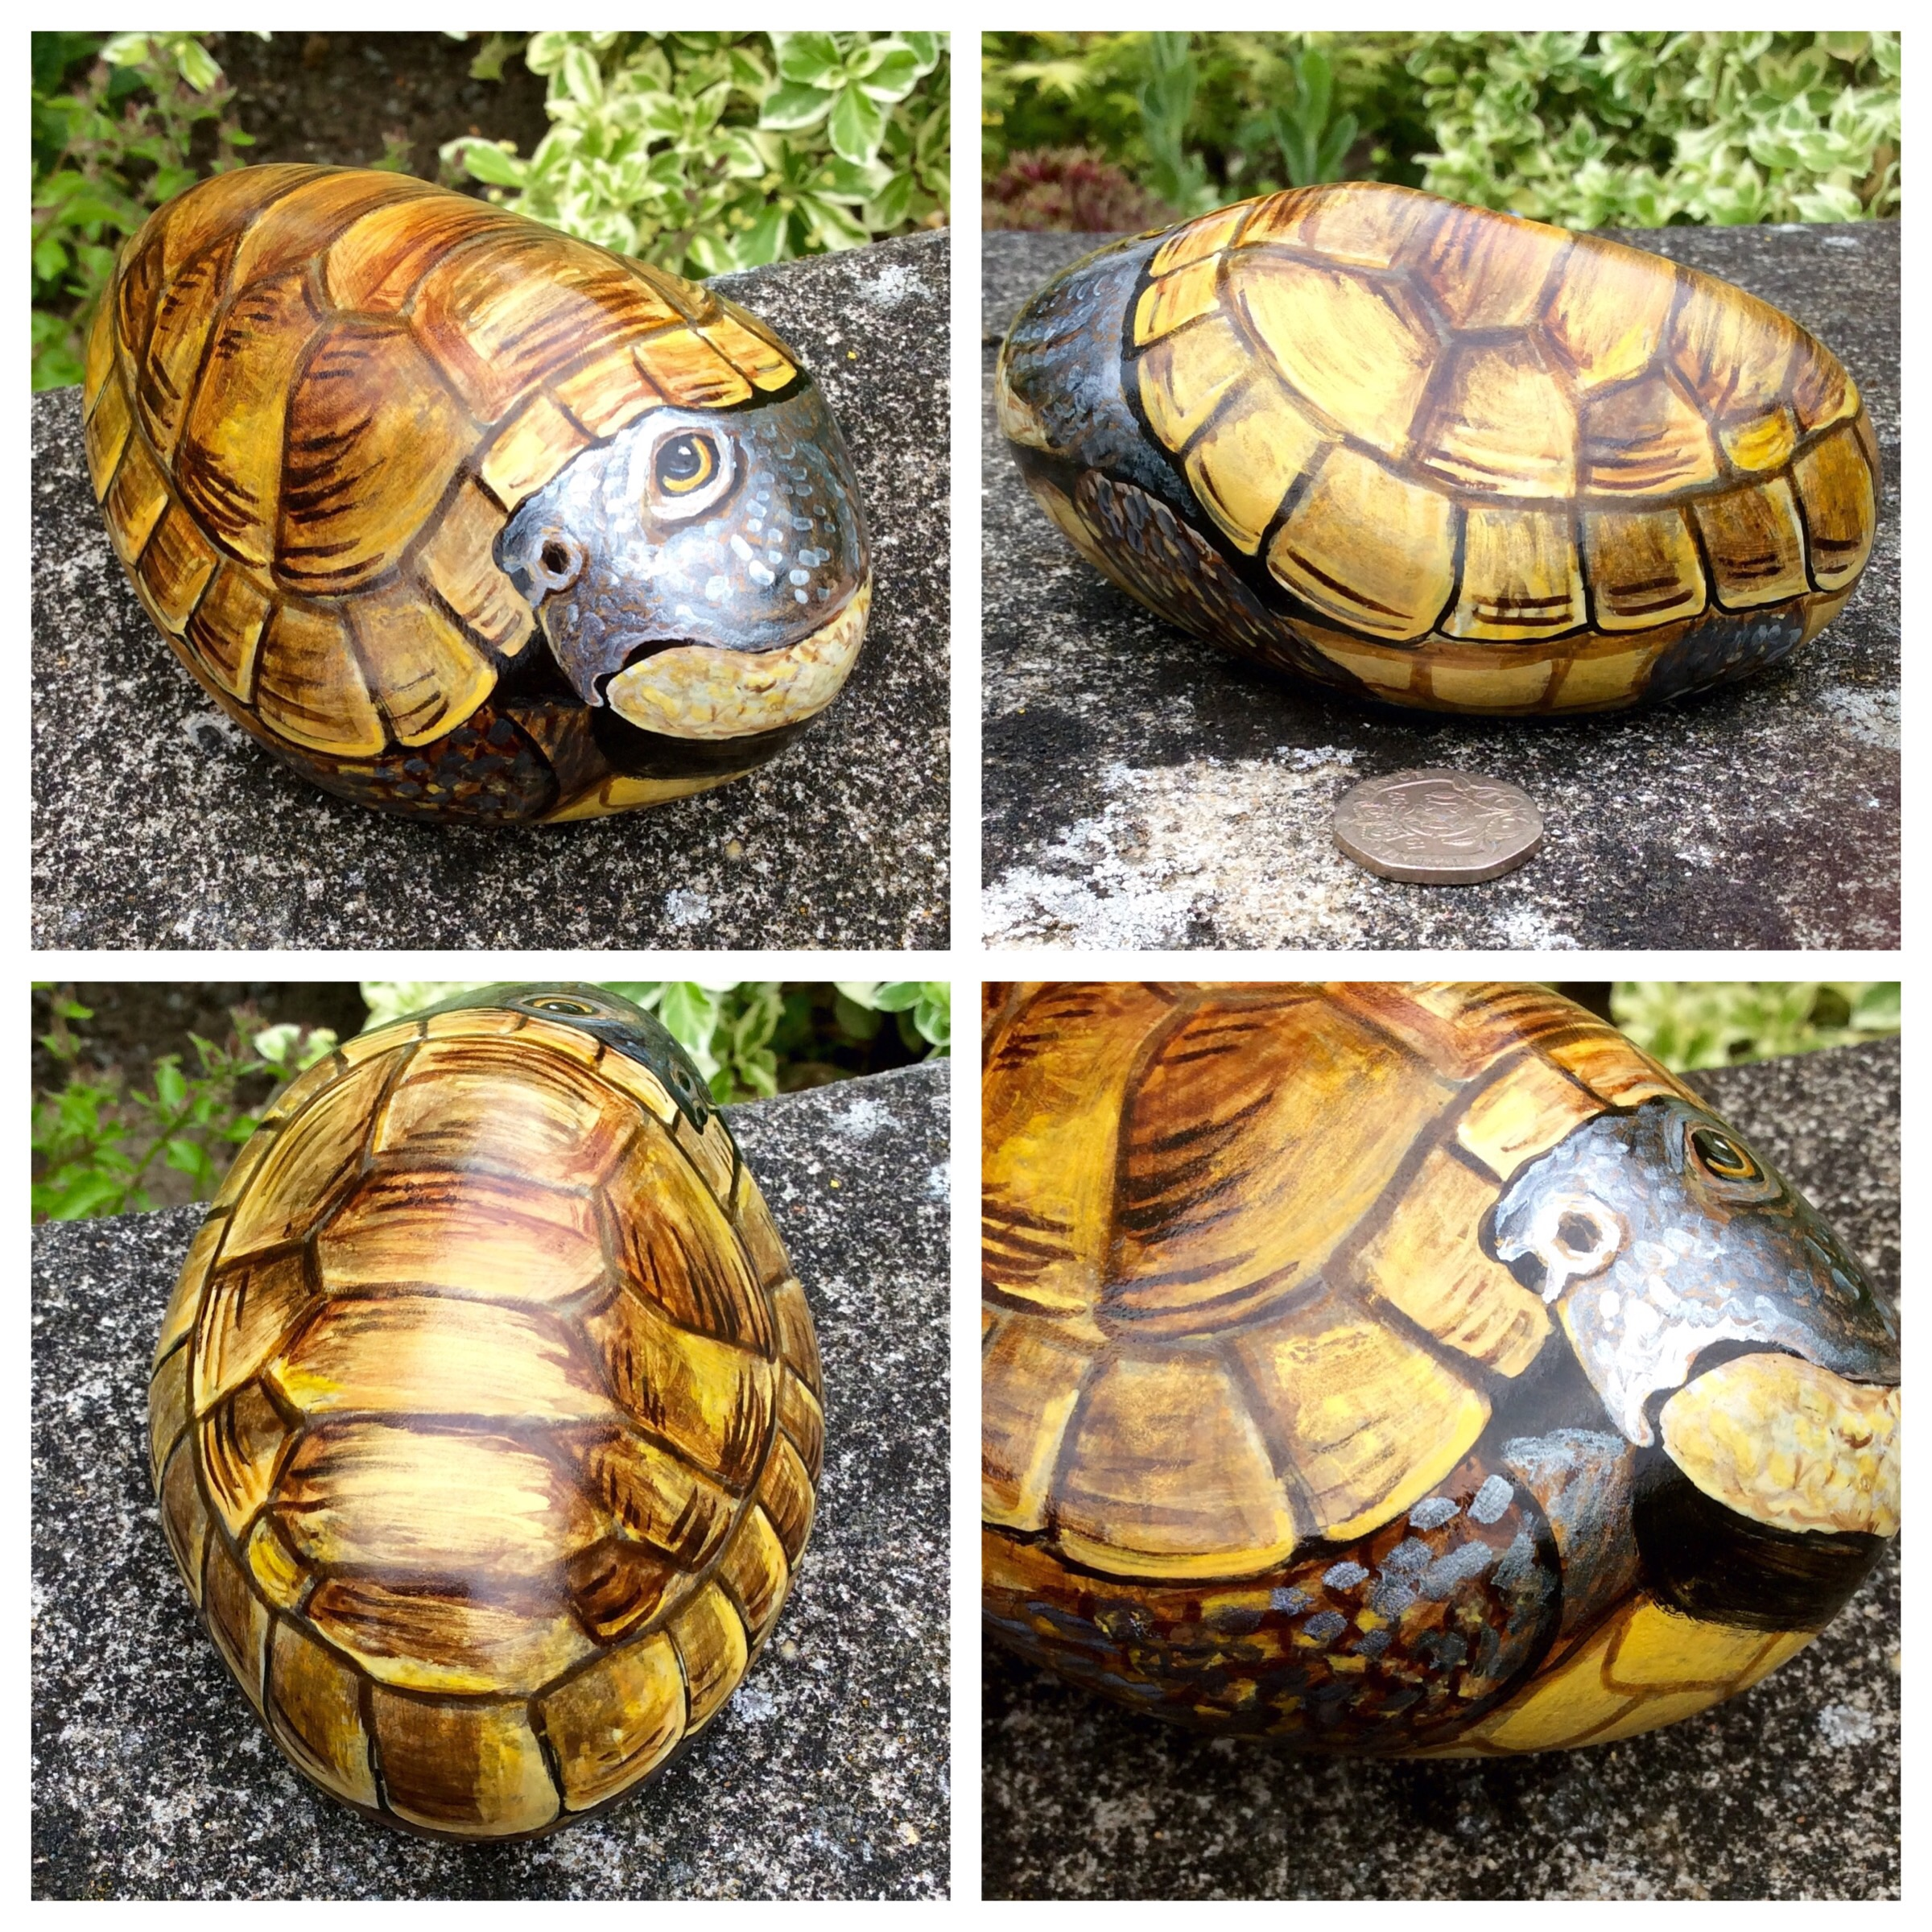 Tortoise hand painted on rock | CobbleCreatures